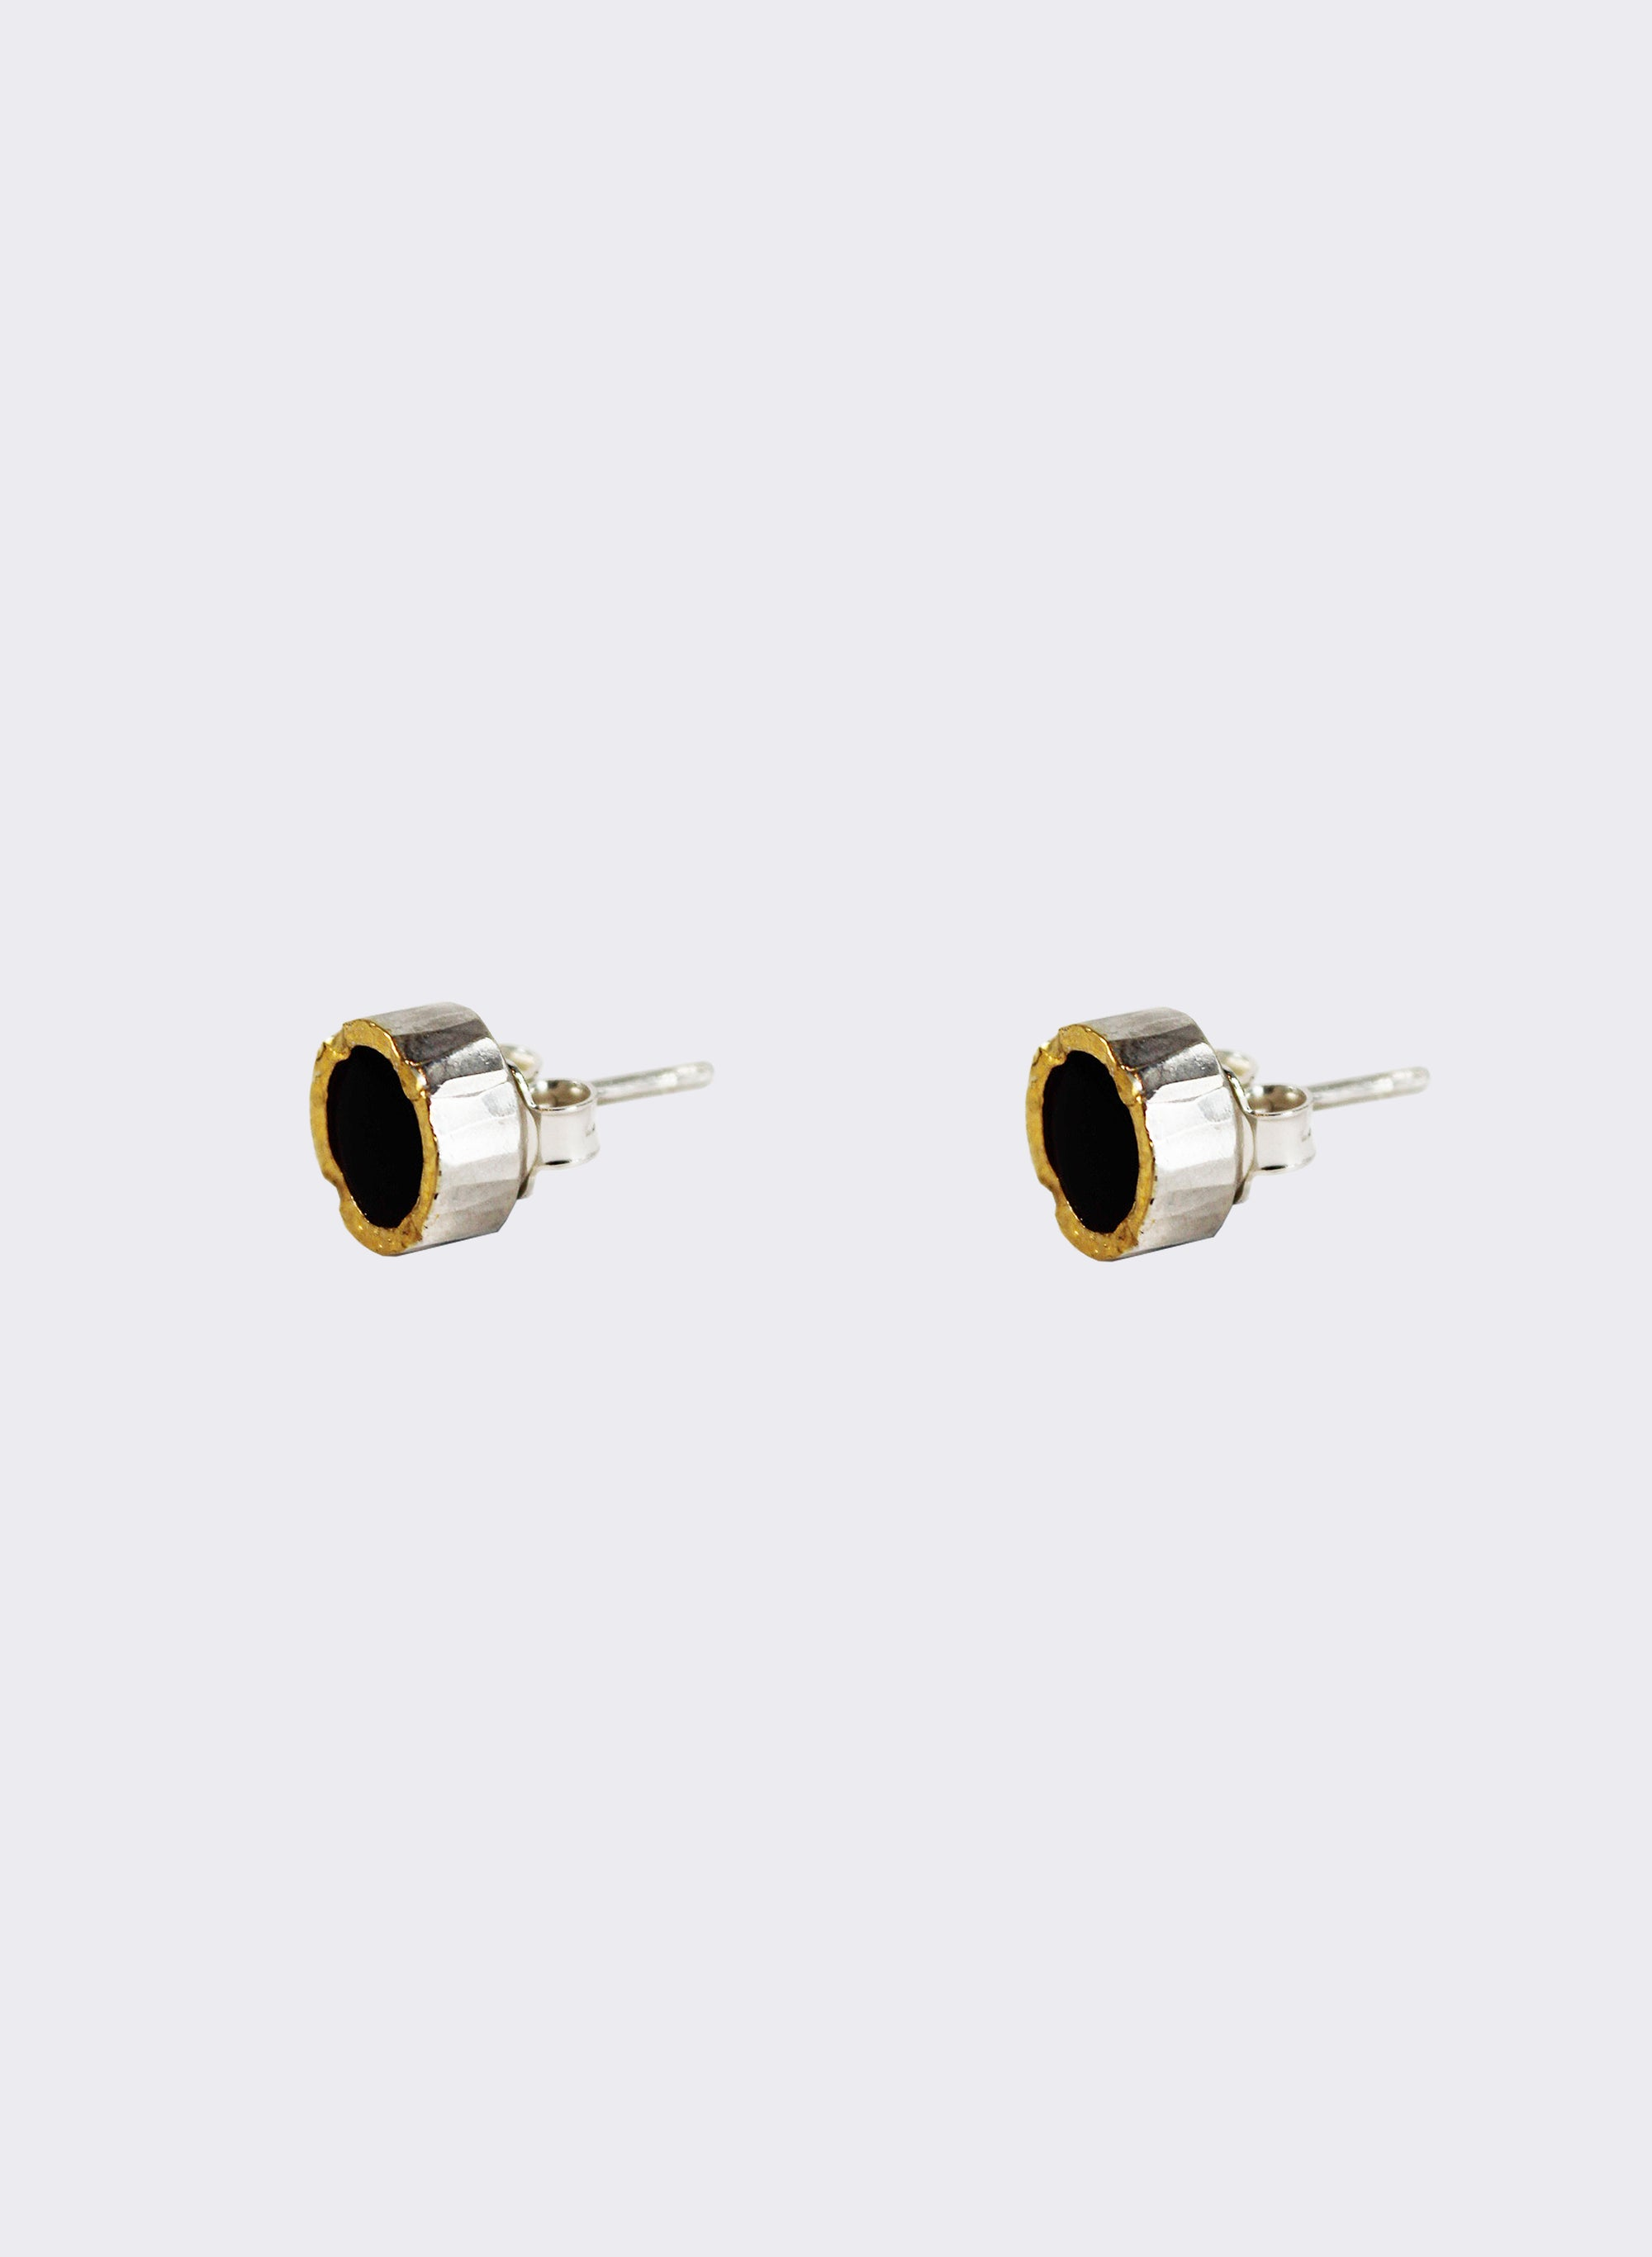 Round Black Jade Stud Earrings - Gold